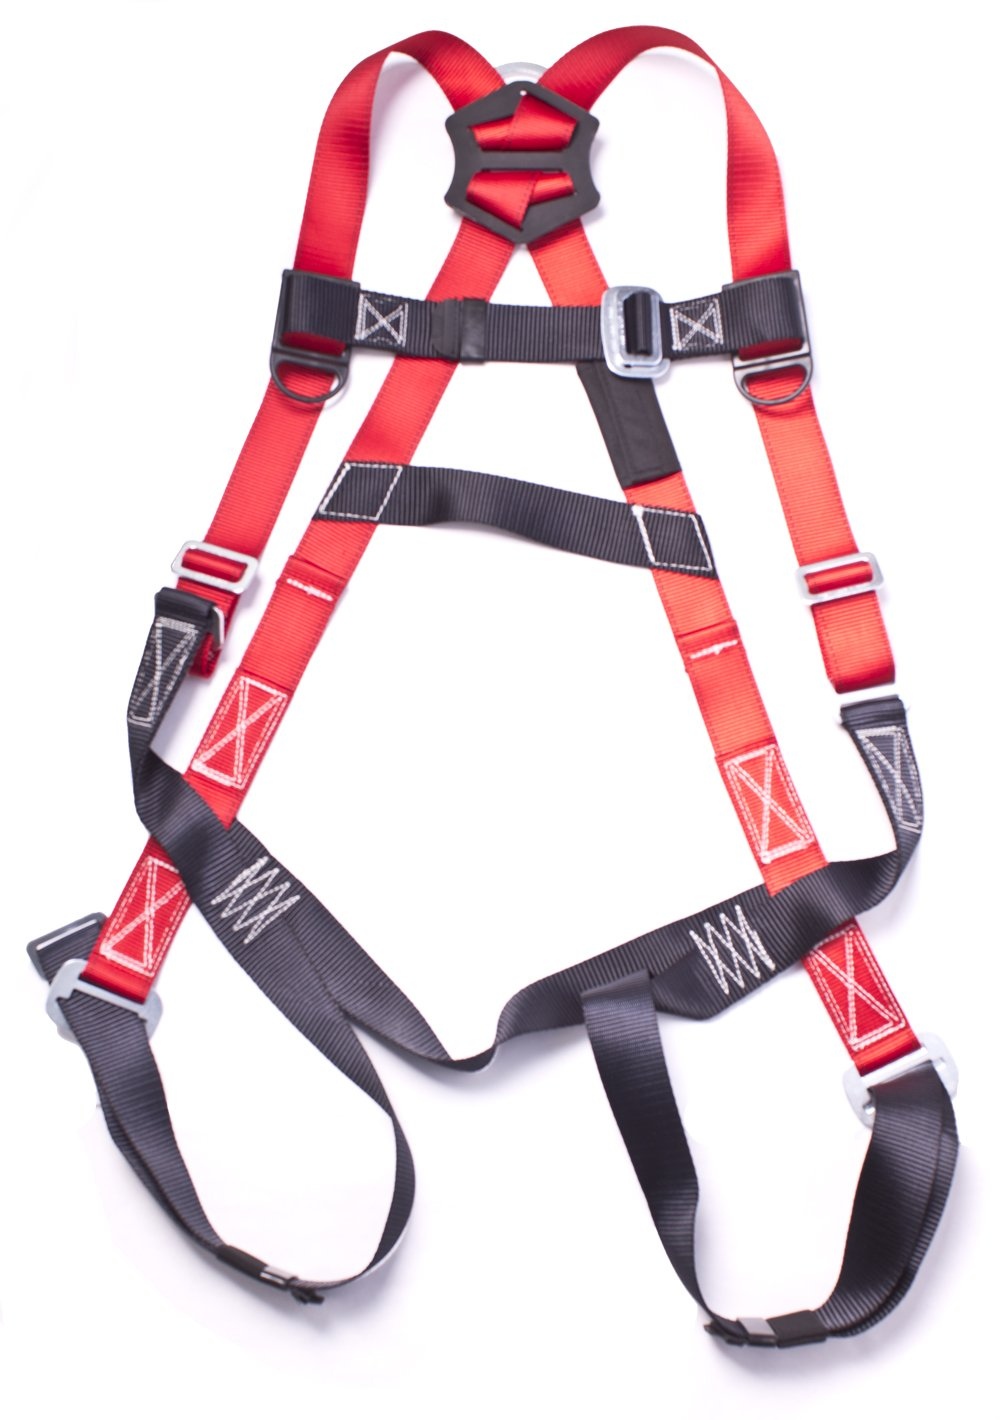 Gulfe Warehouse Adjustable Safety Harness Full-Body Picker w/Pass Through Legs Black/Red